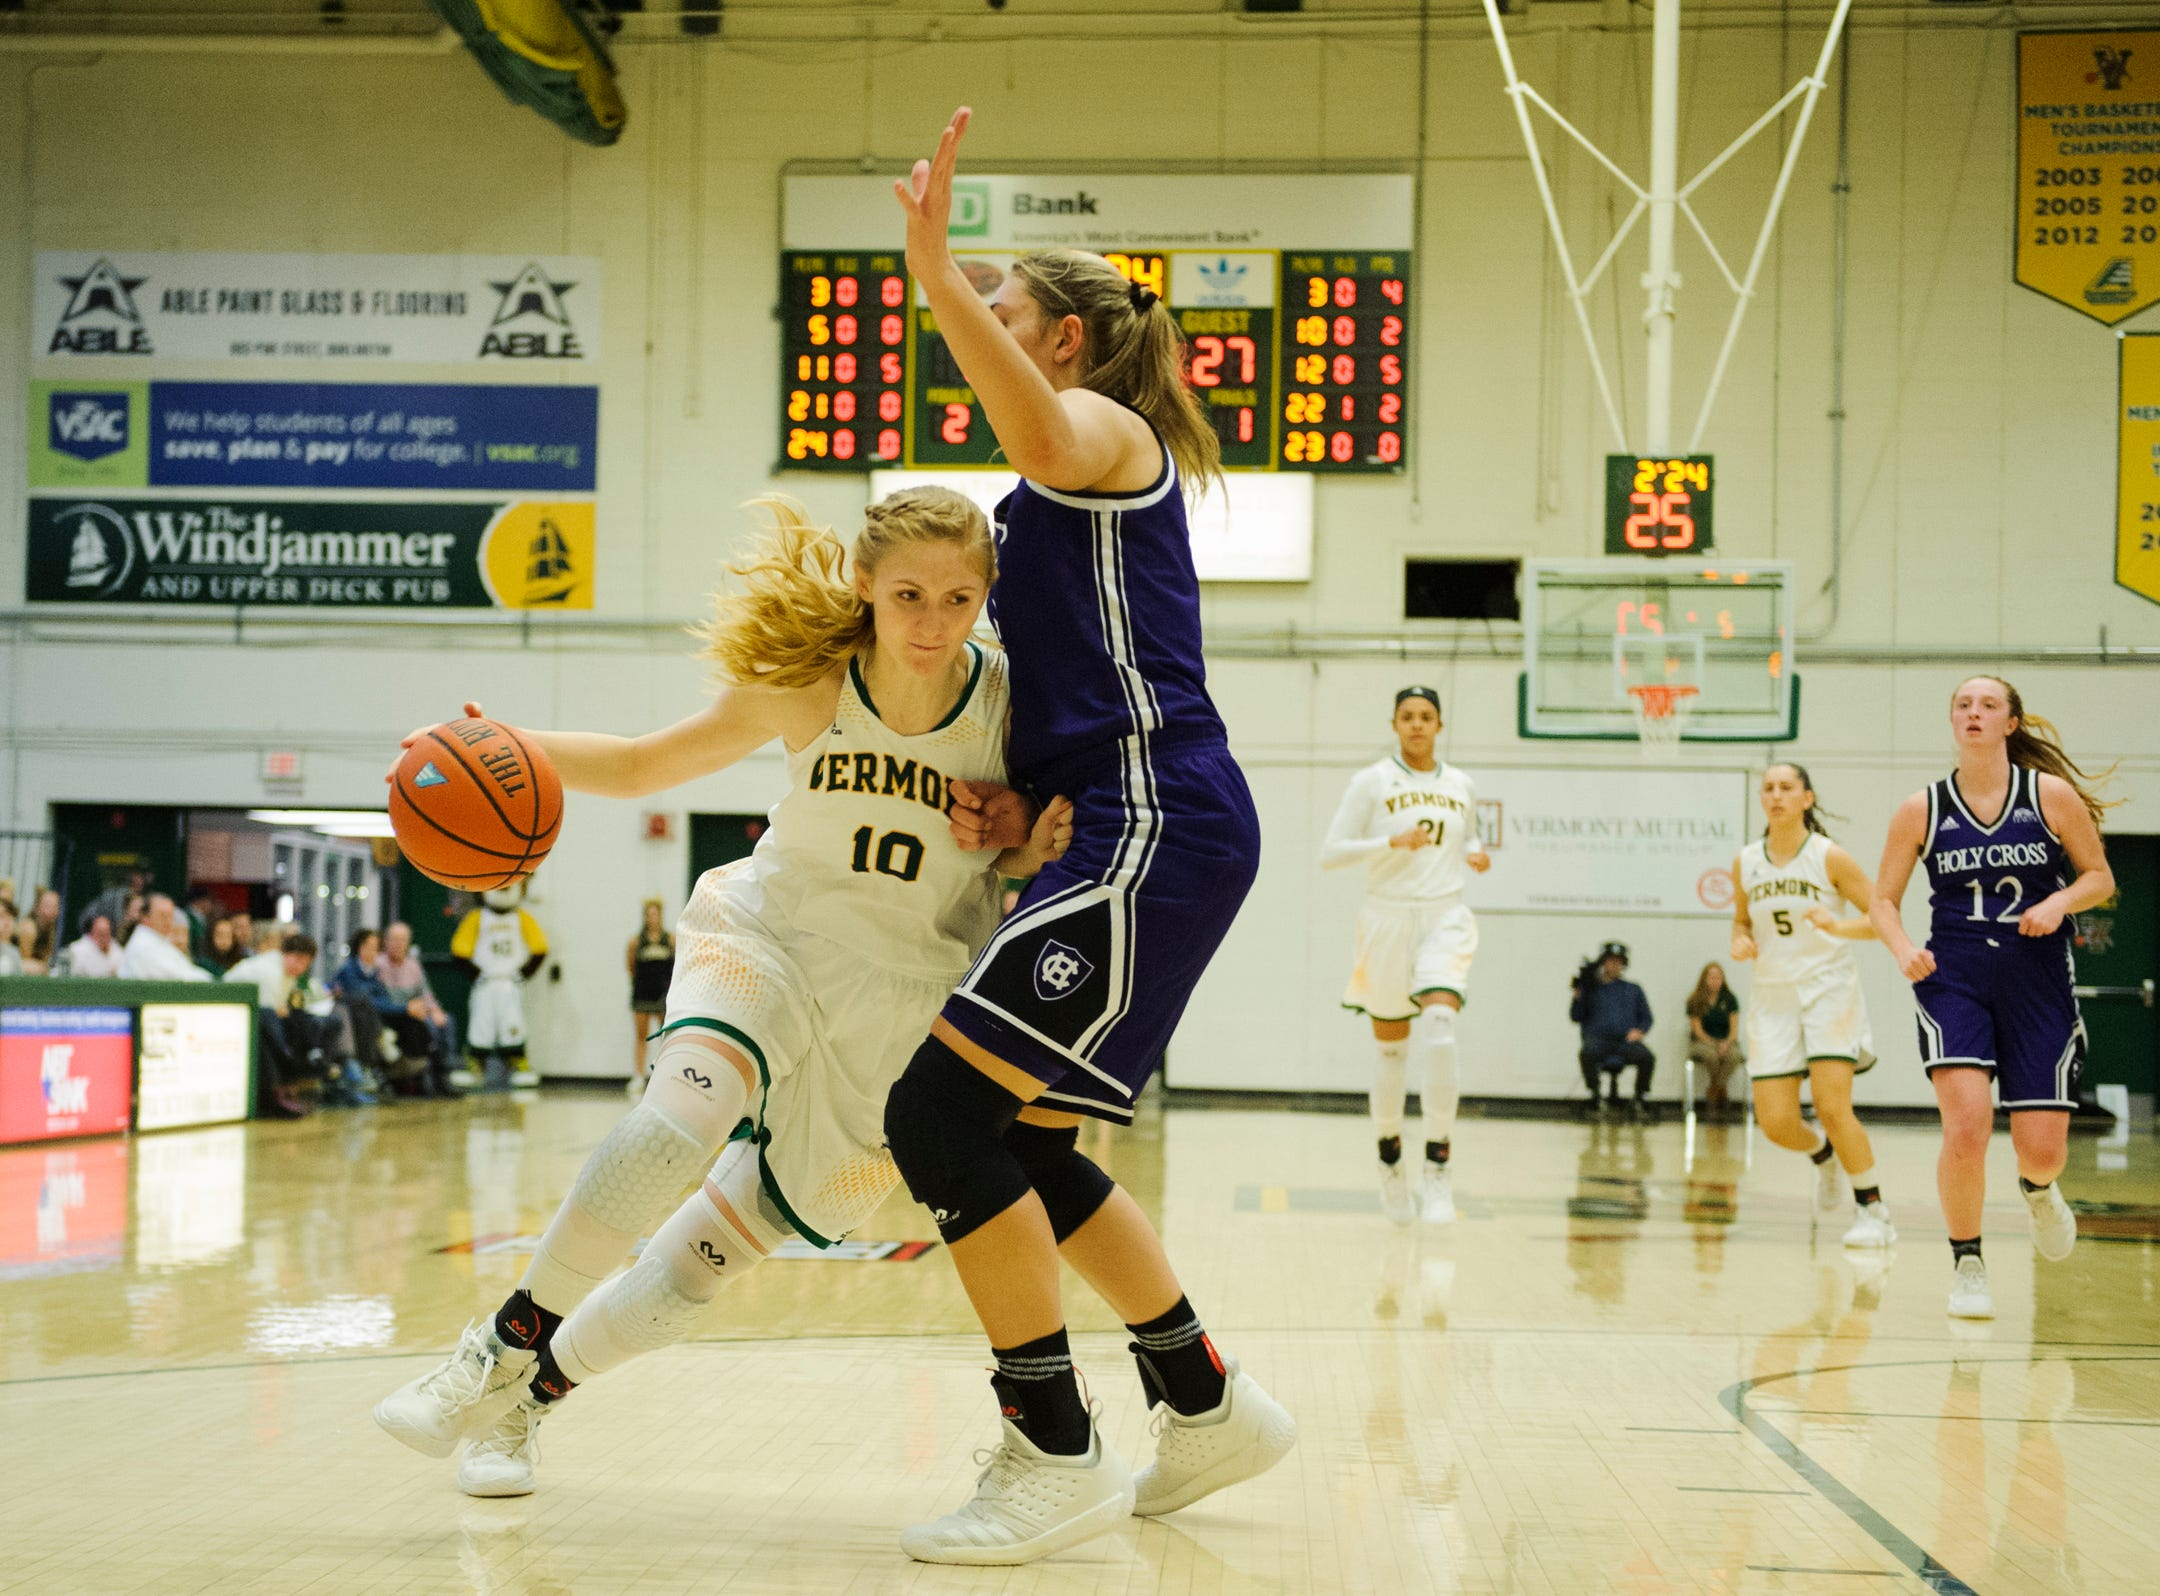 Vermont's Hannah Crymble drives to the hoop during the women's basketball game between the Holy Cross Crusaders and the Vermont Catamounts at Patrick Gym on Wednesday night November 28, 2018 in Burlington.